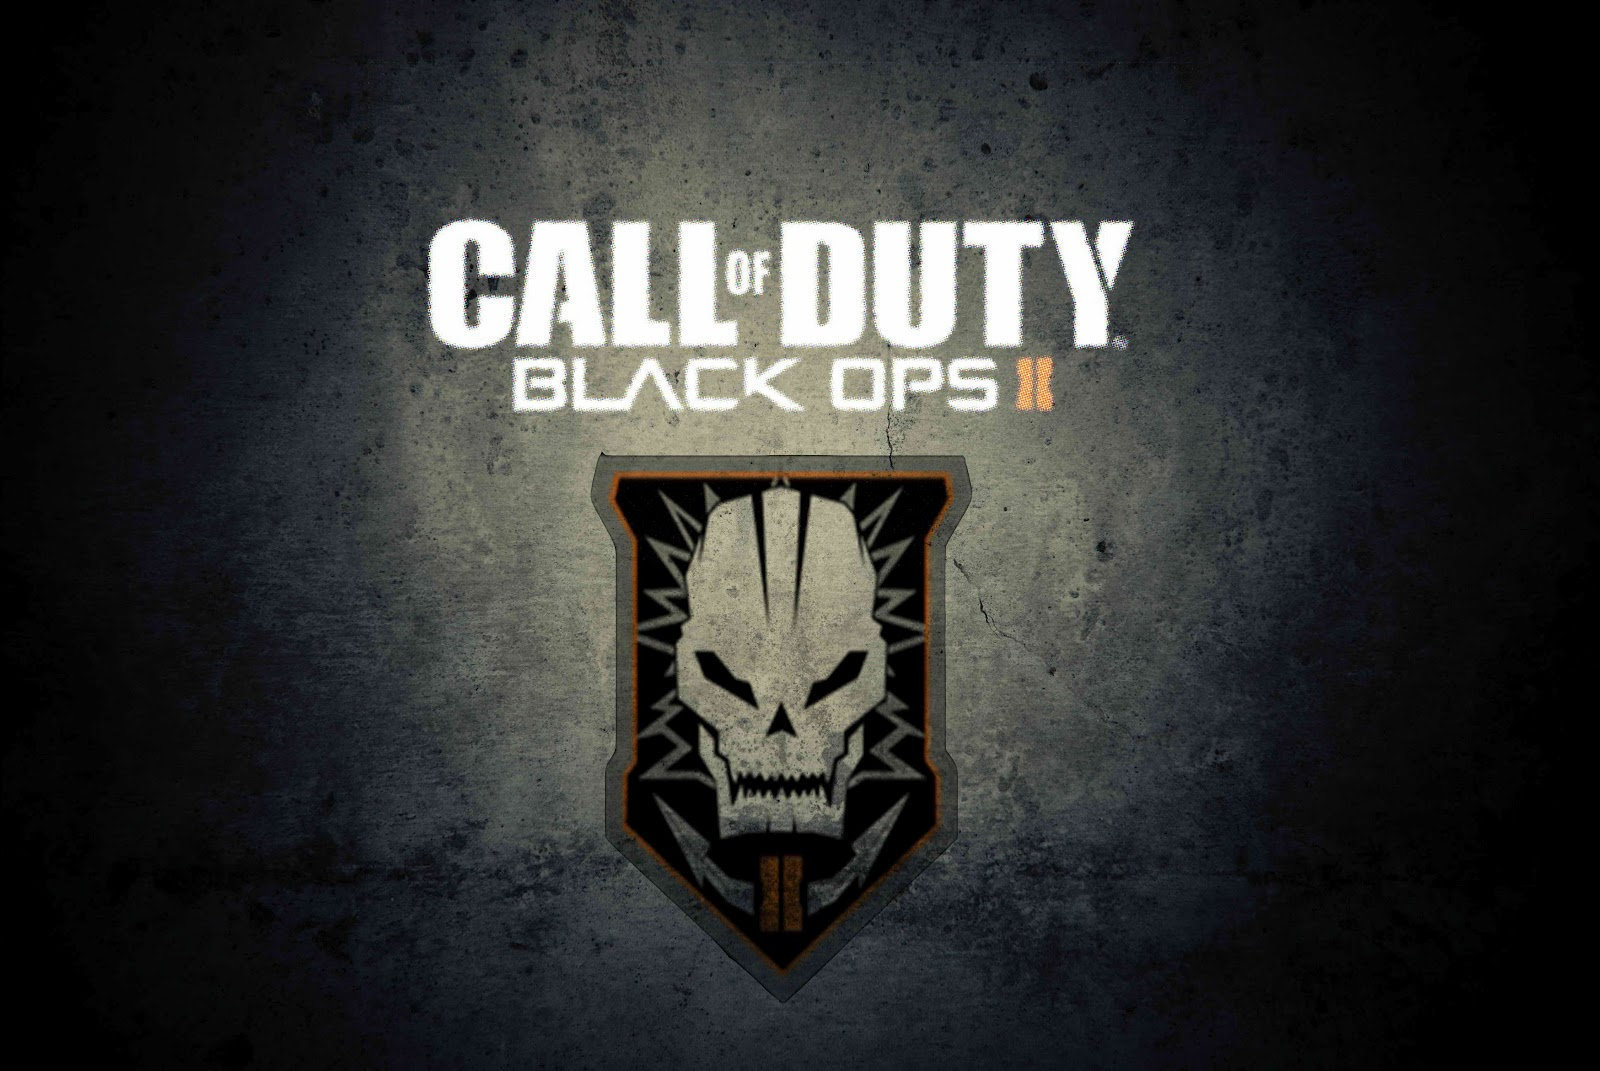 Call Of Duty Bo2 Wallpaper: HD WALLPAPERS: Call Of Duty Black Ops 2 HD Wallpapers